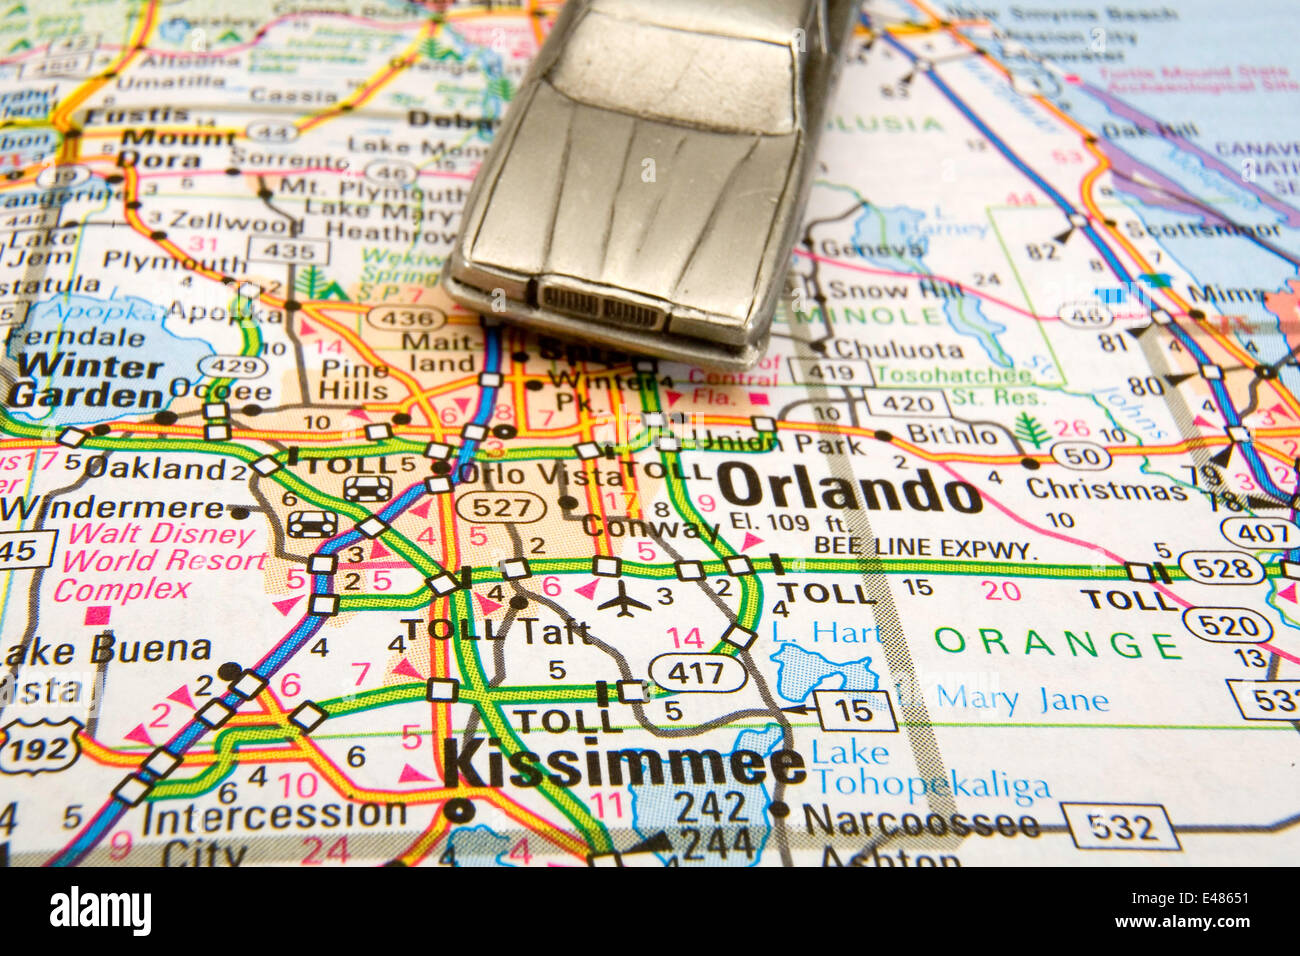 Model sedan on a road map of Orlando and Kissimmee FL Stock Photo